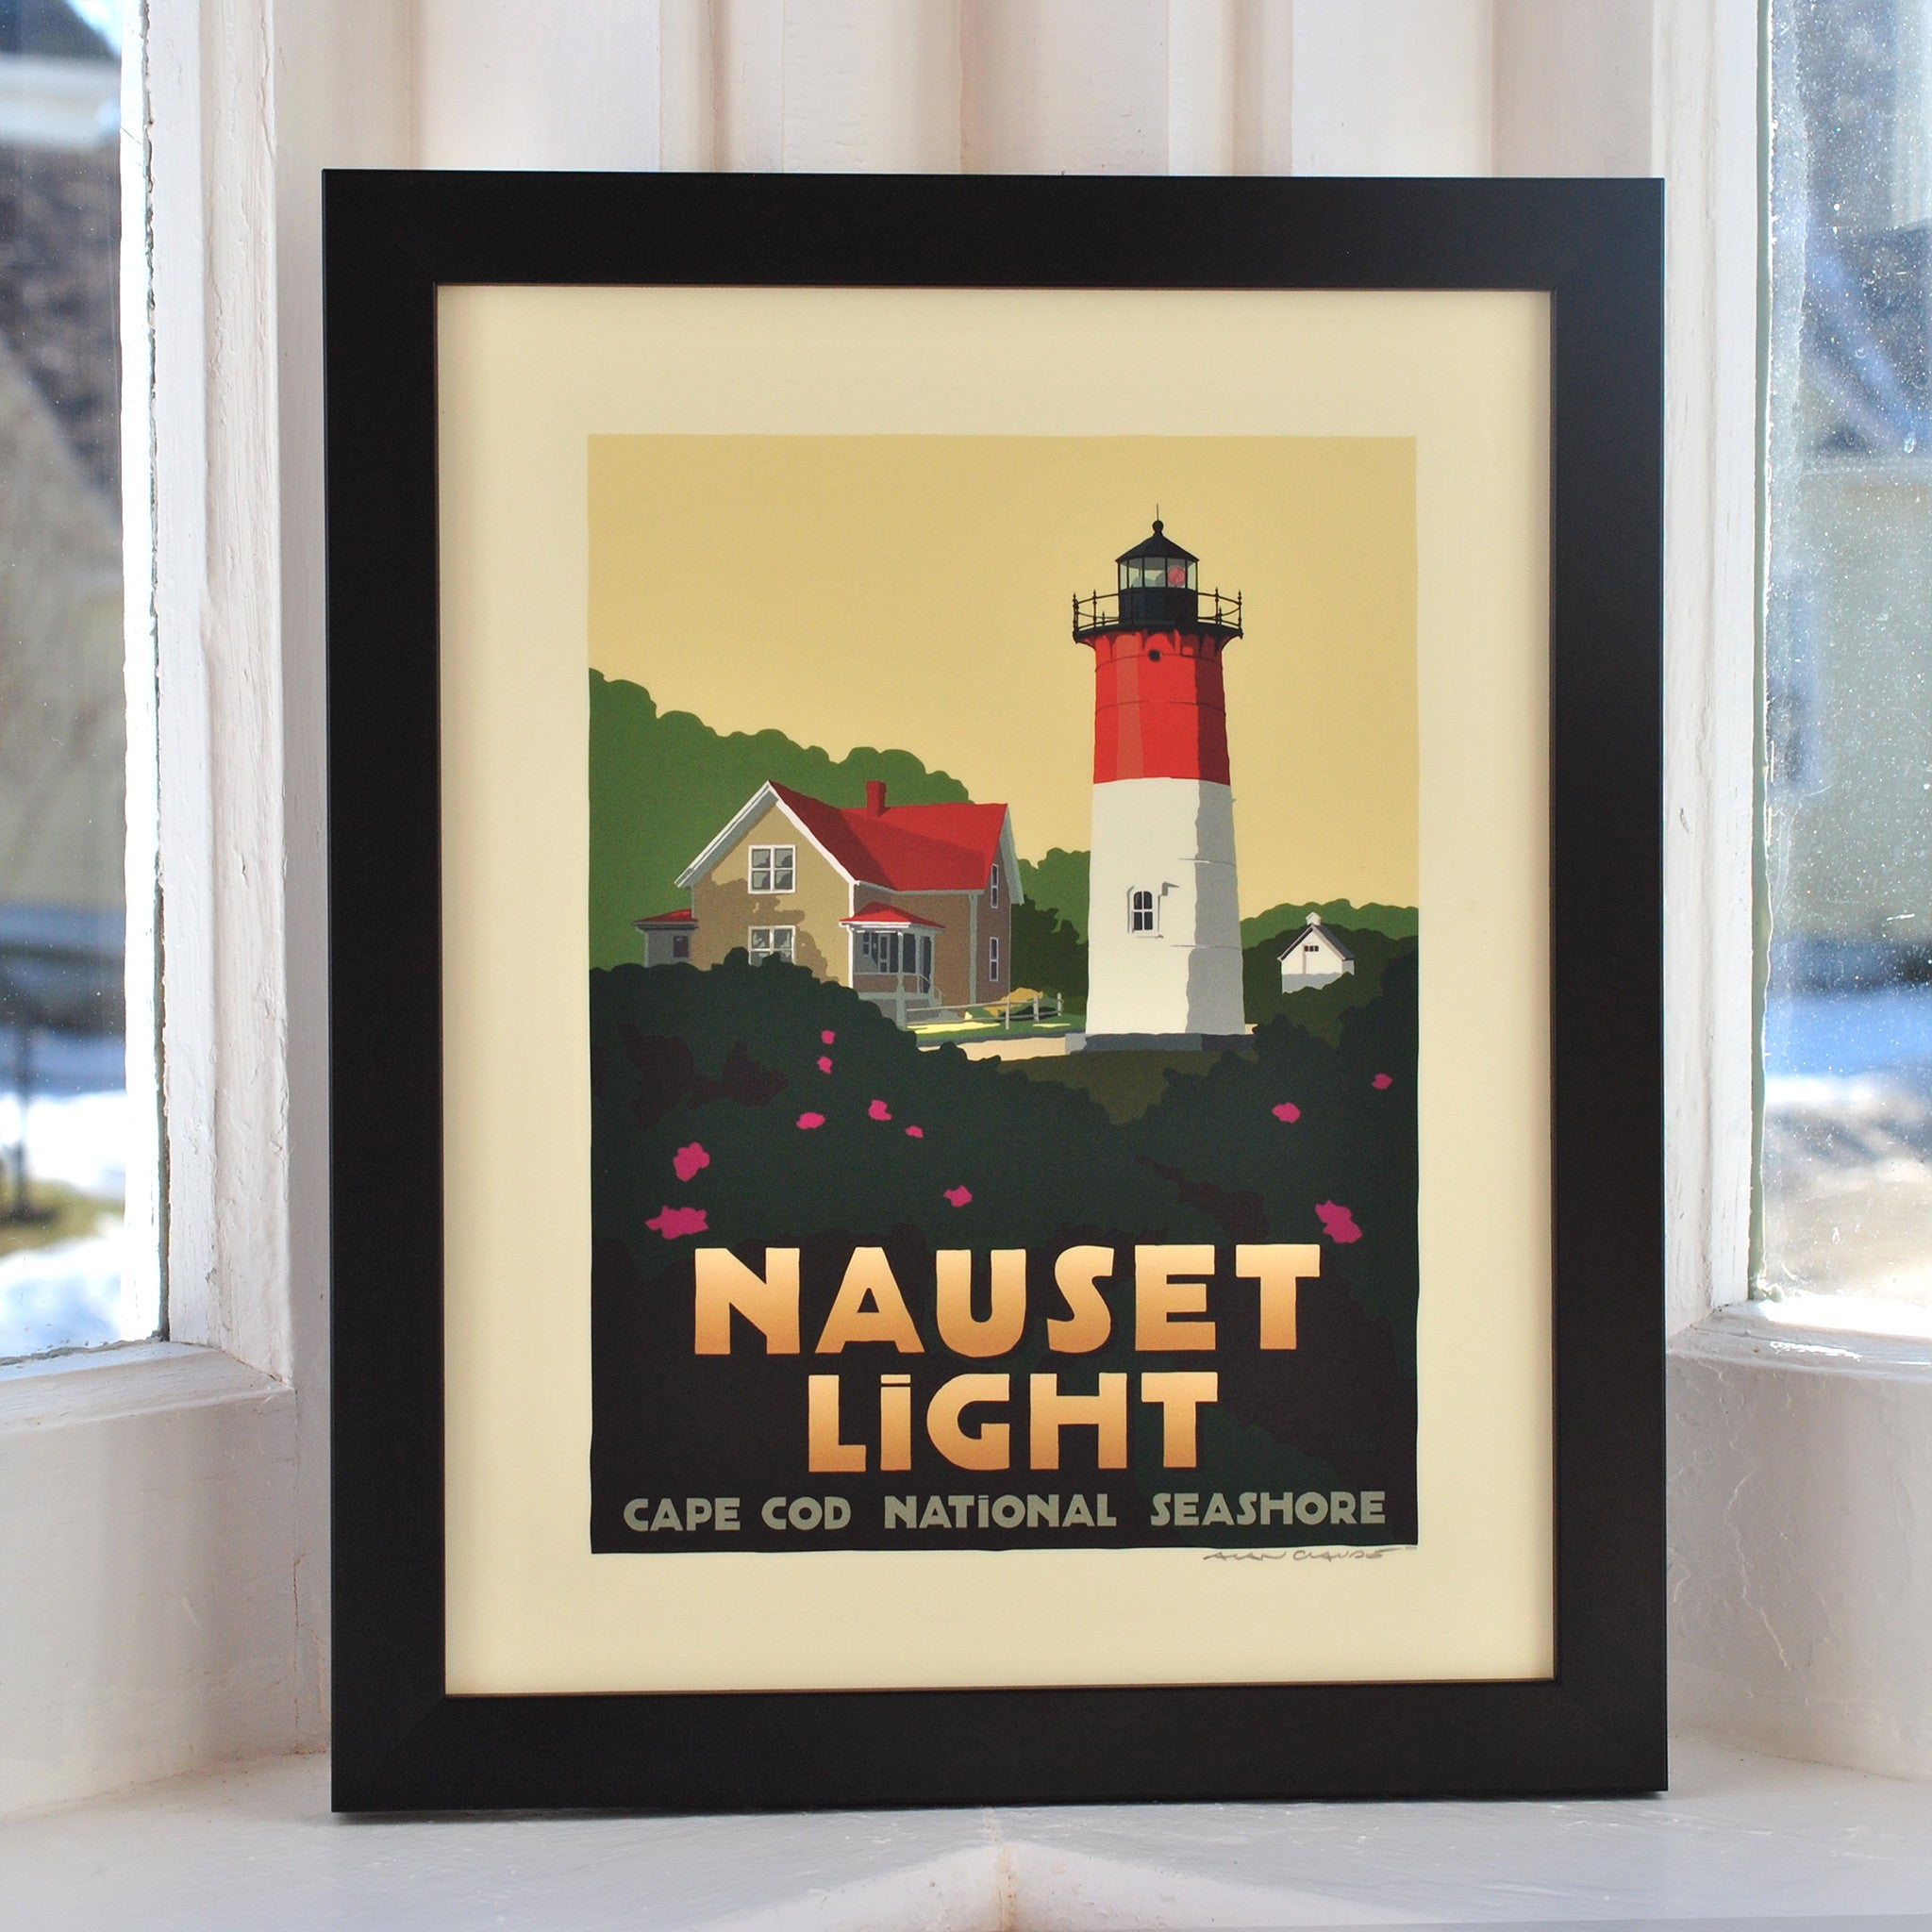 "Nauset Light Art Print 8"" x 10"" Framed Travel Poster - Massachusetts"